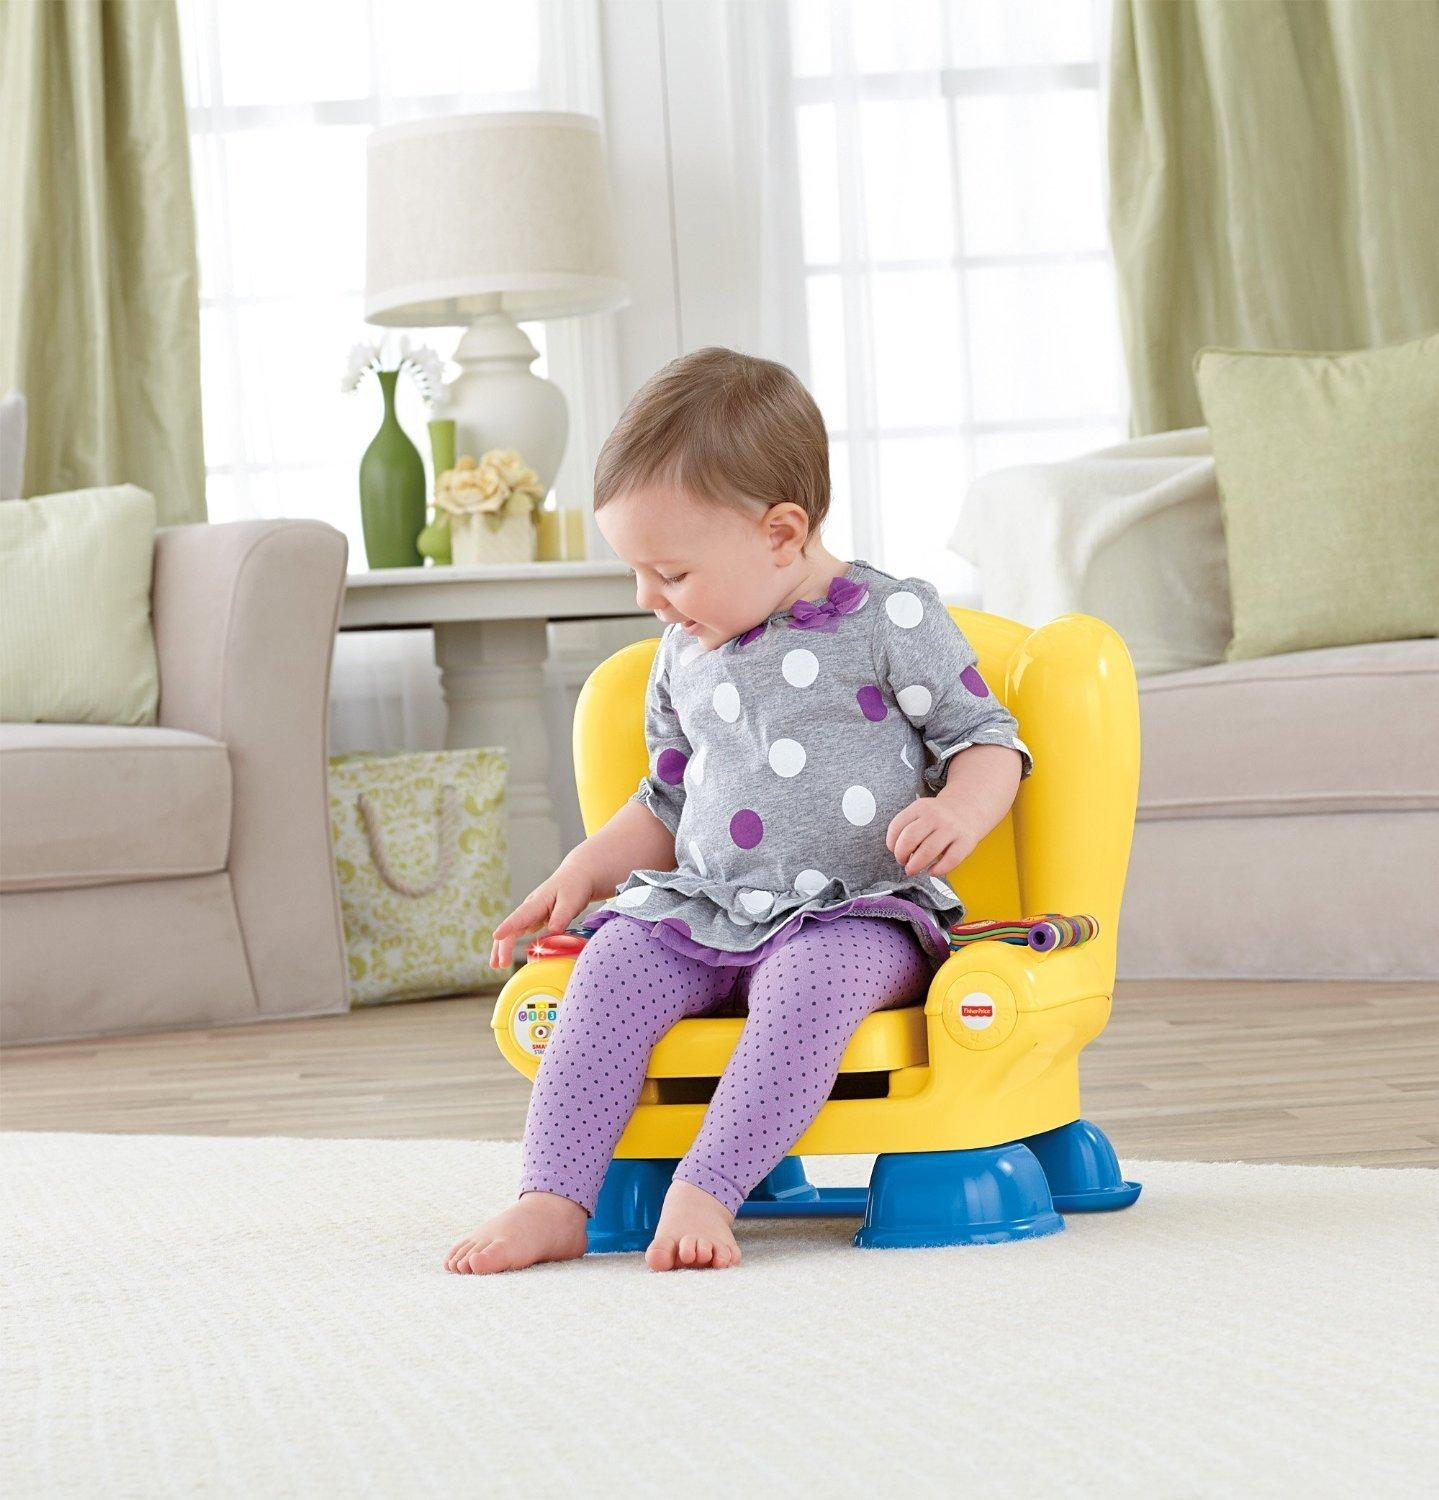 fisher price laugh and learn chair pink luxury office chairs india deals on 1001 blocks